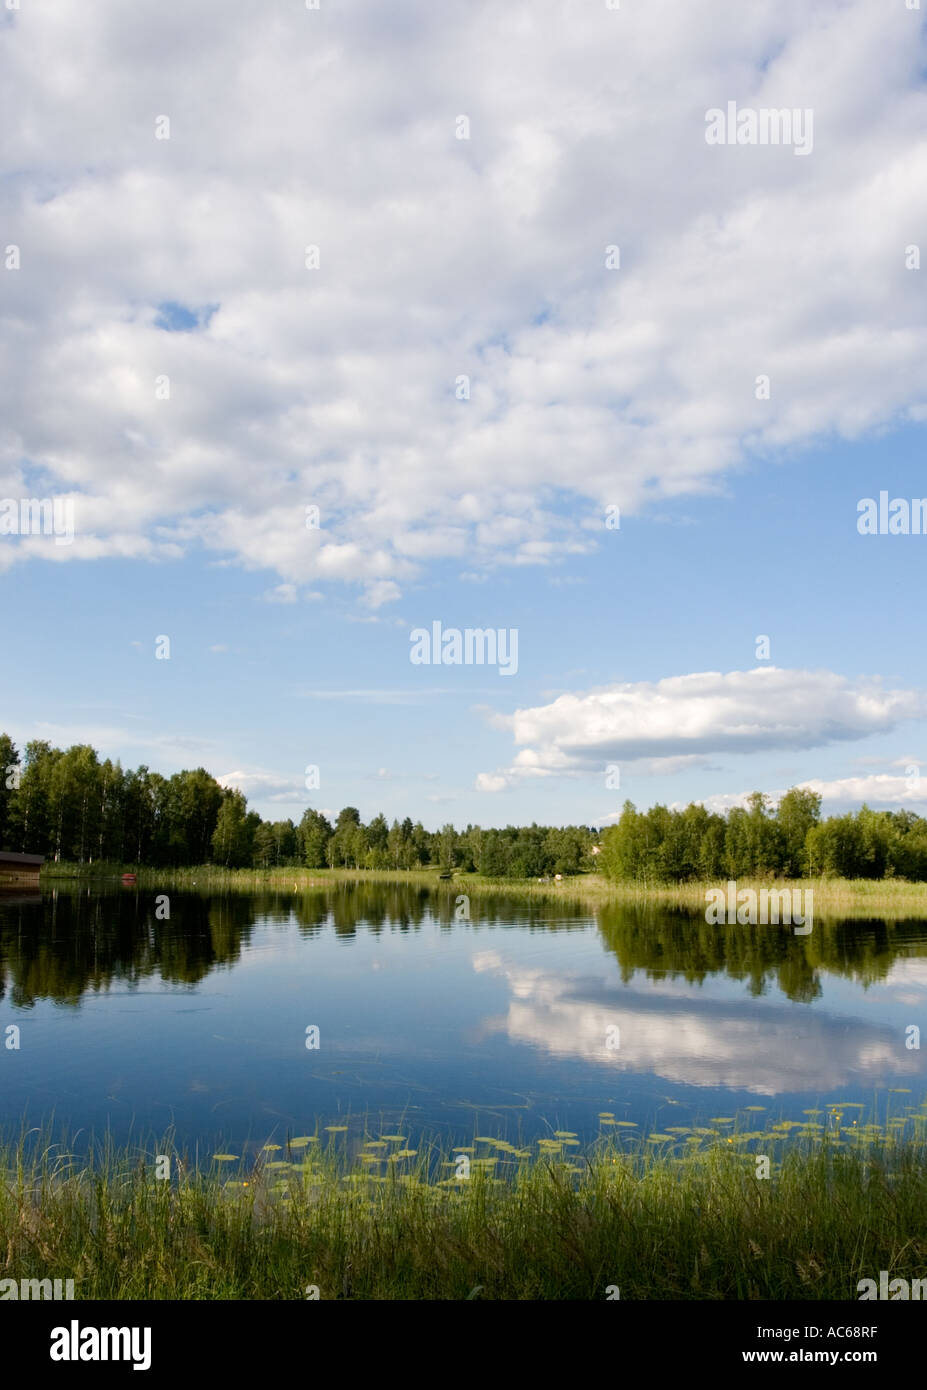 River scenery from Finland - Stock Image